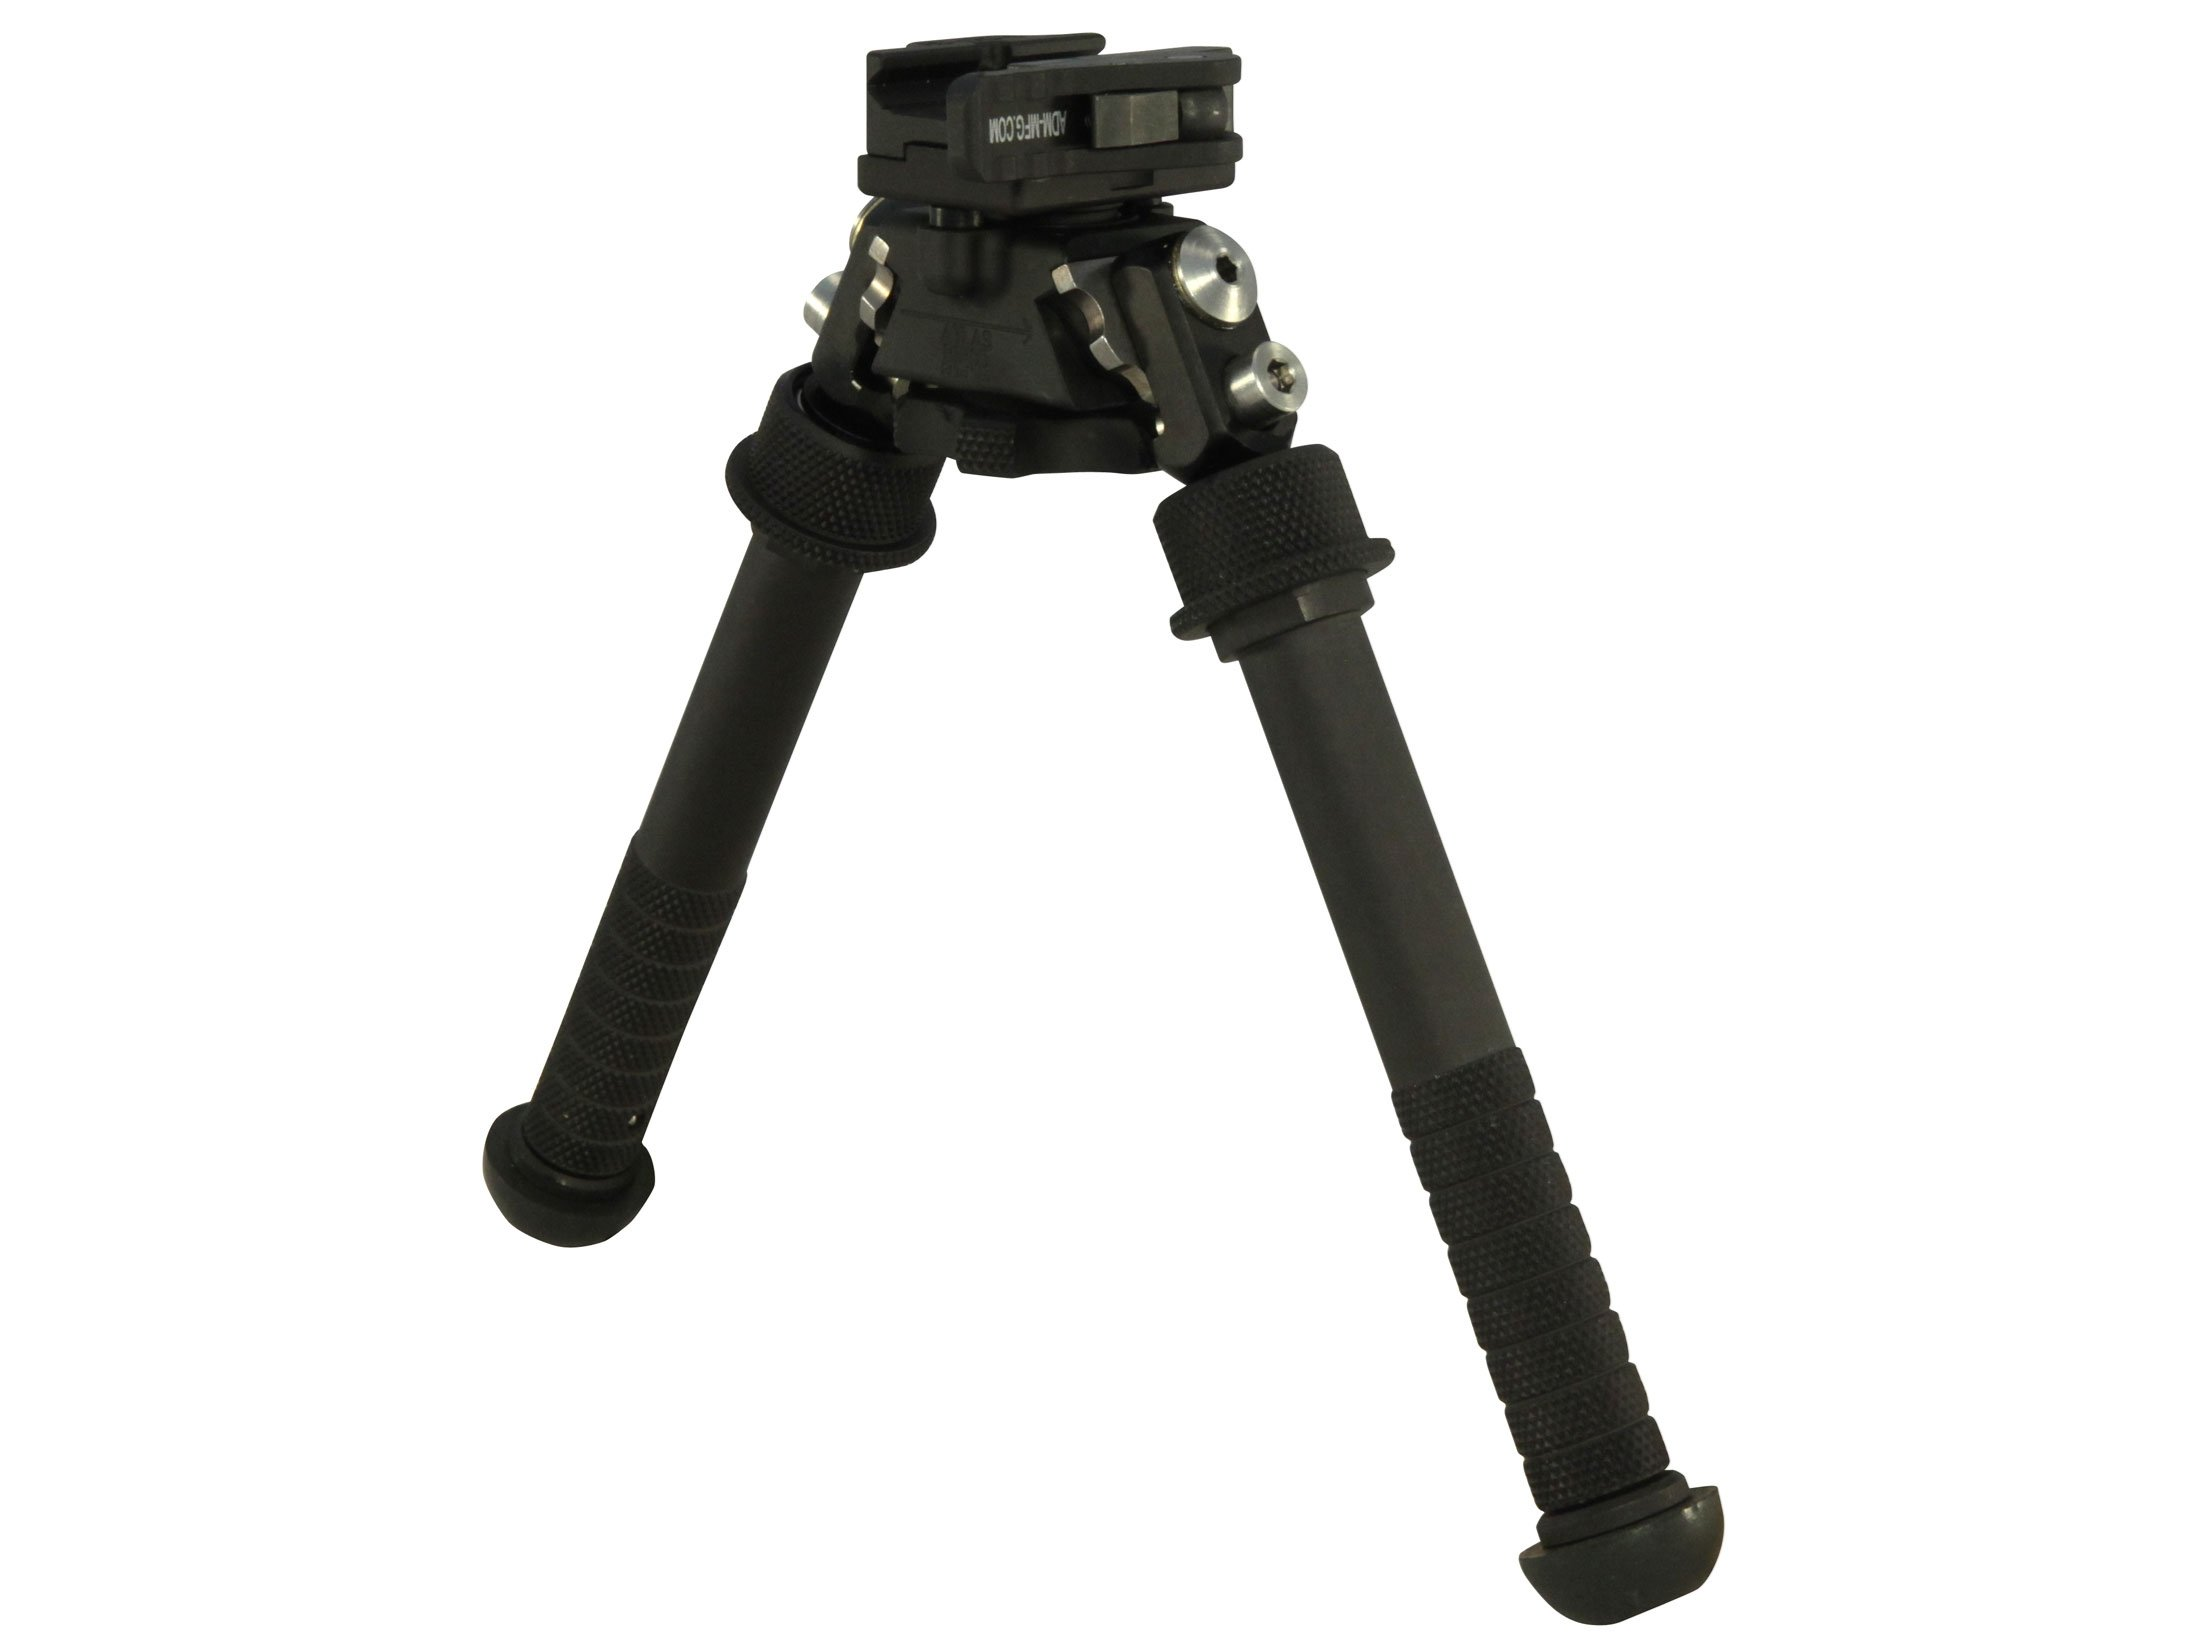 Accu-Shot BT46-LW17 PSR Atlas Bipod with ADM-170-S, Multicolor by Accu-Shot